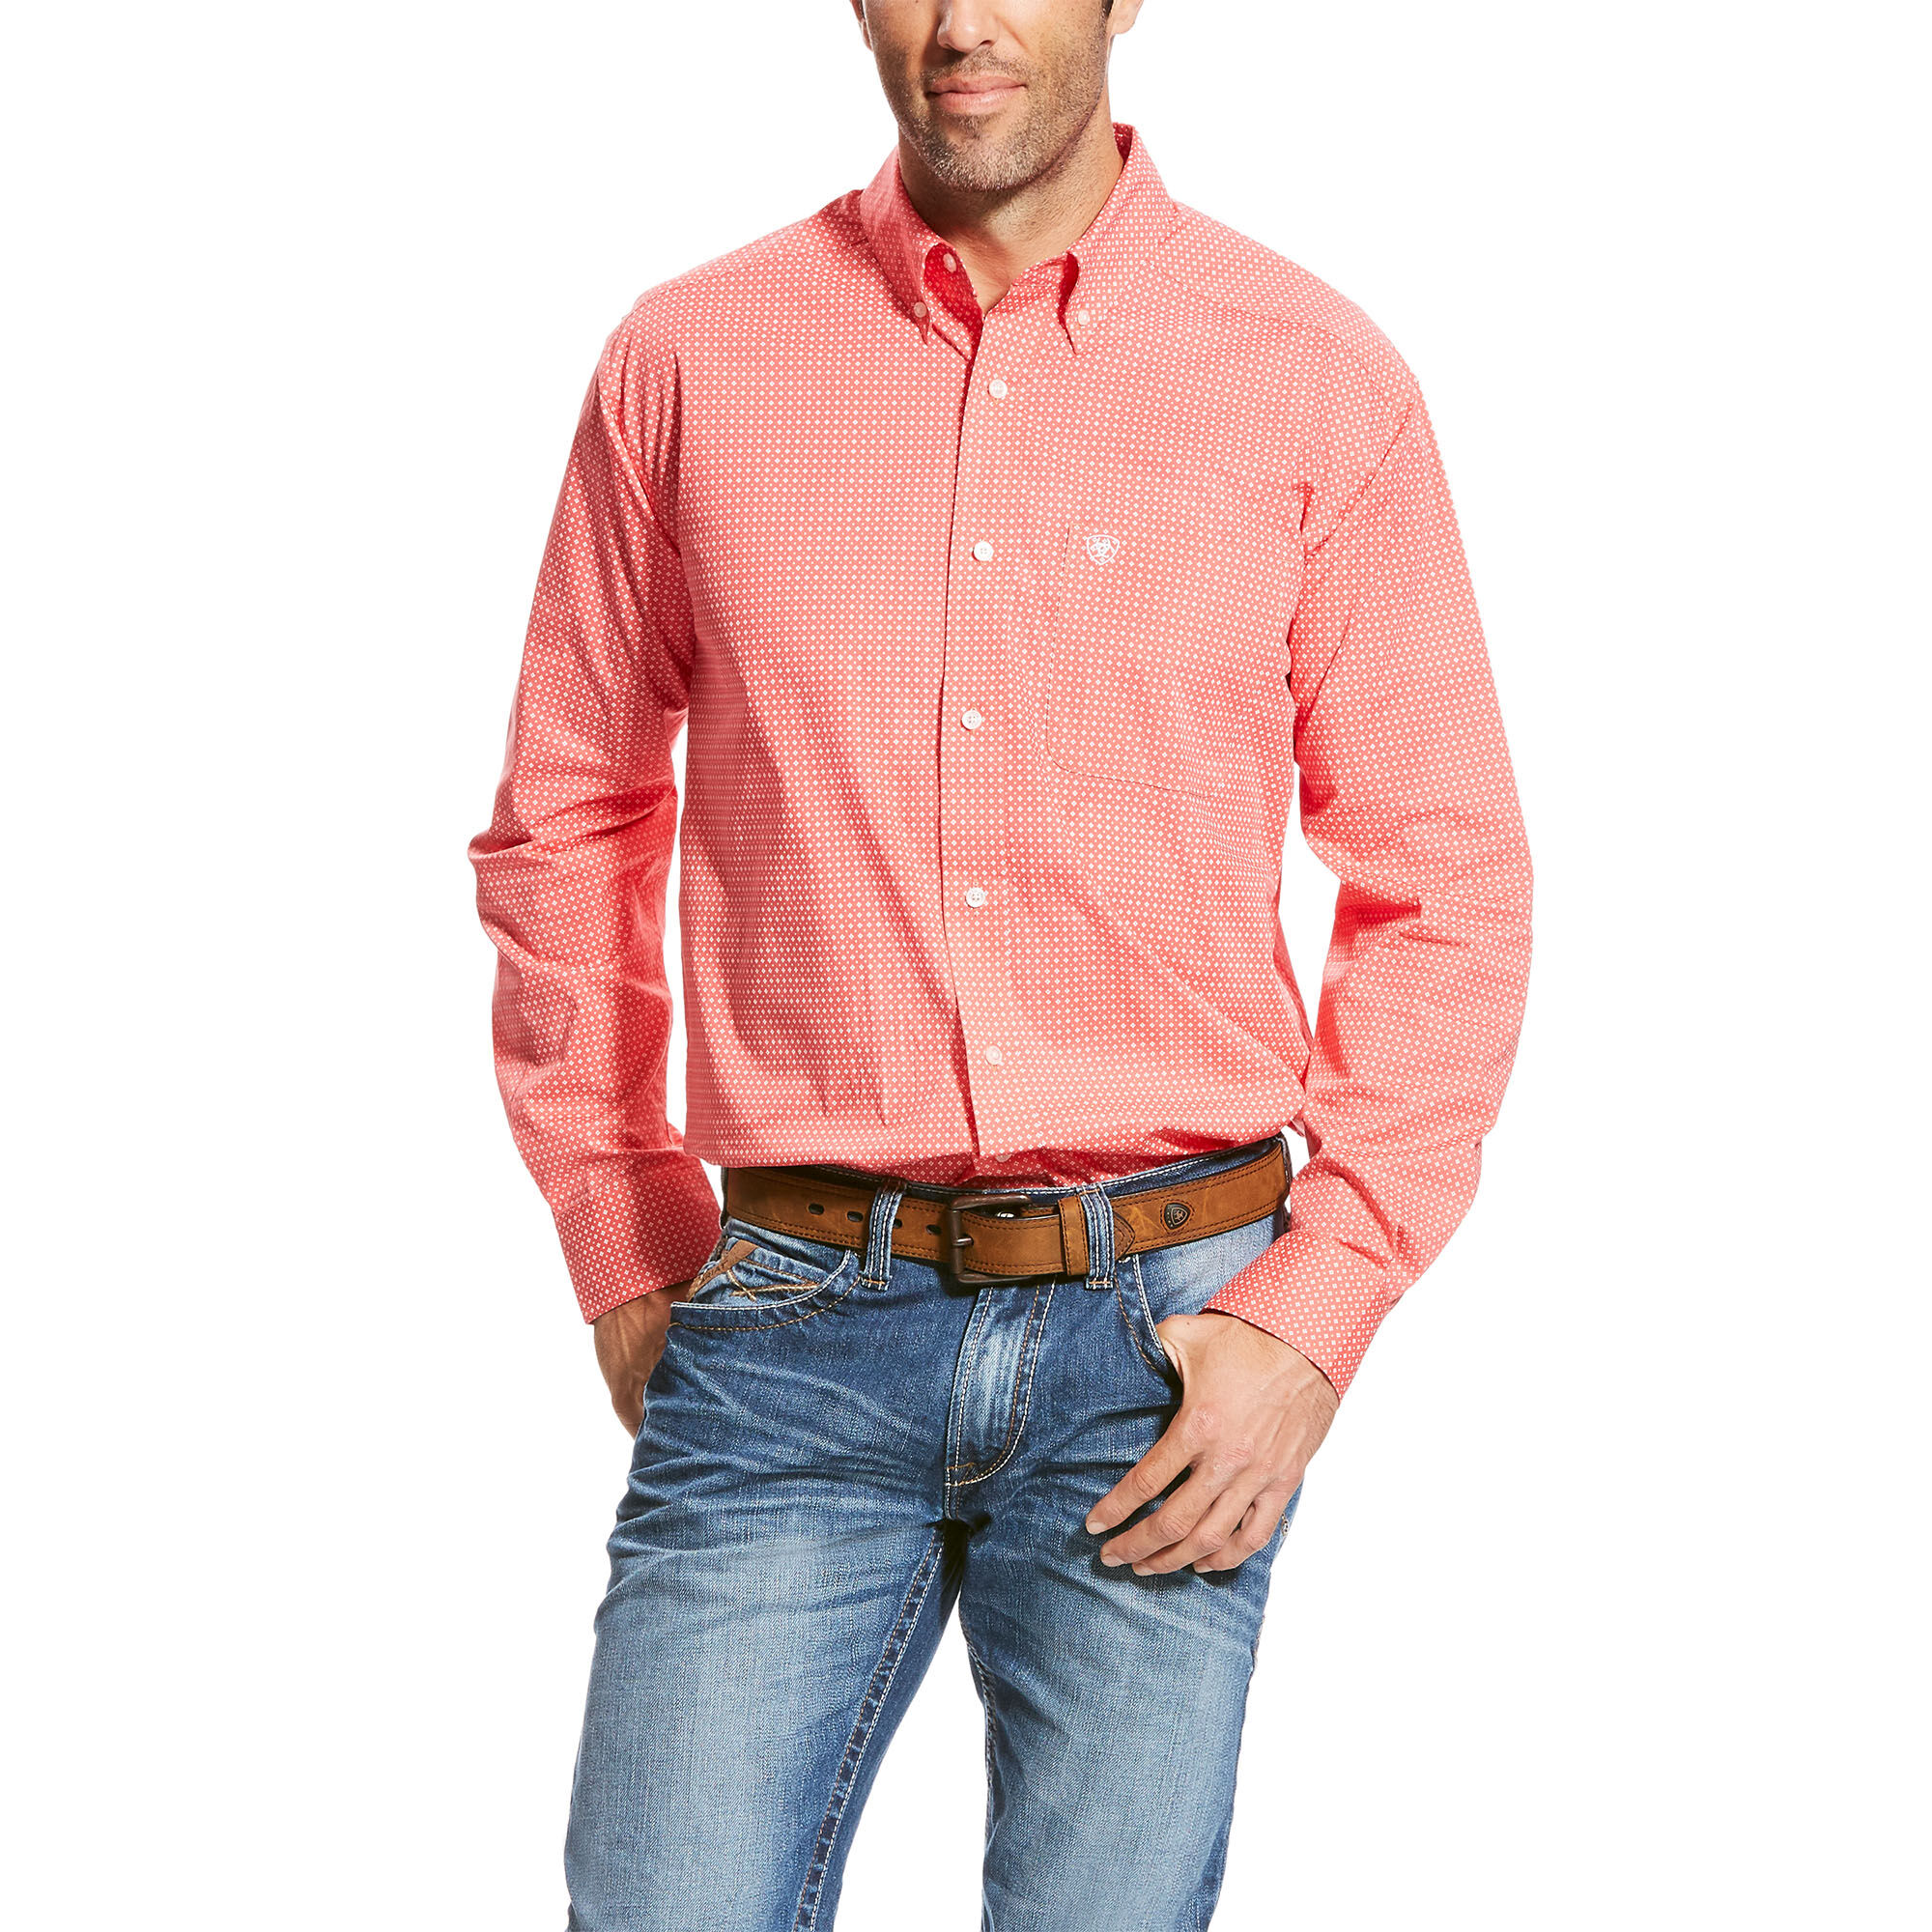 Tangeman Stretch Shirt